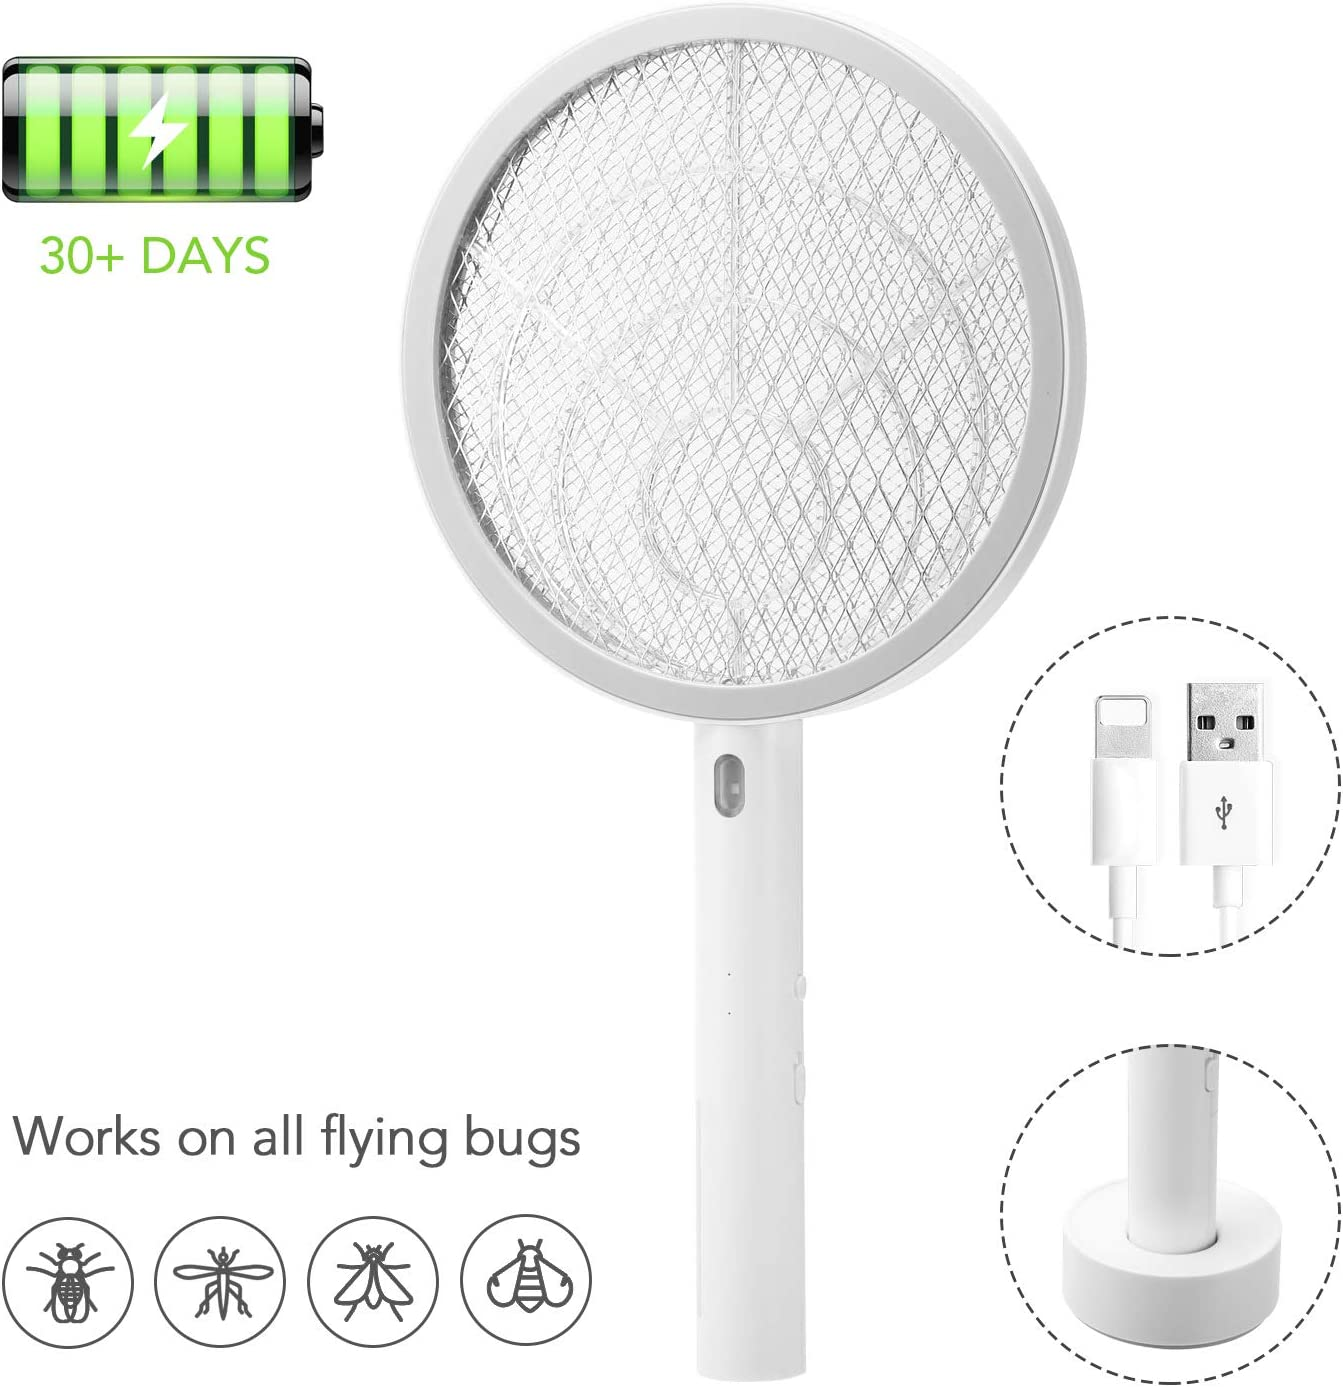 Electric Bug Pest Insect Fly Wasp Handheld Racket Zapper Killer Mosquito Swatter